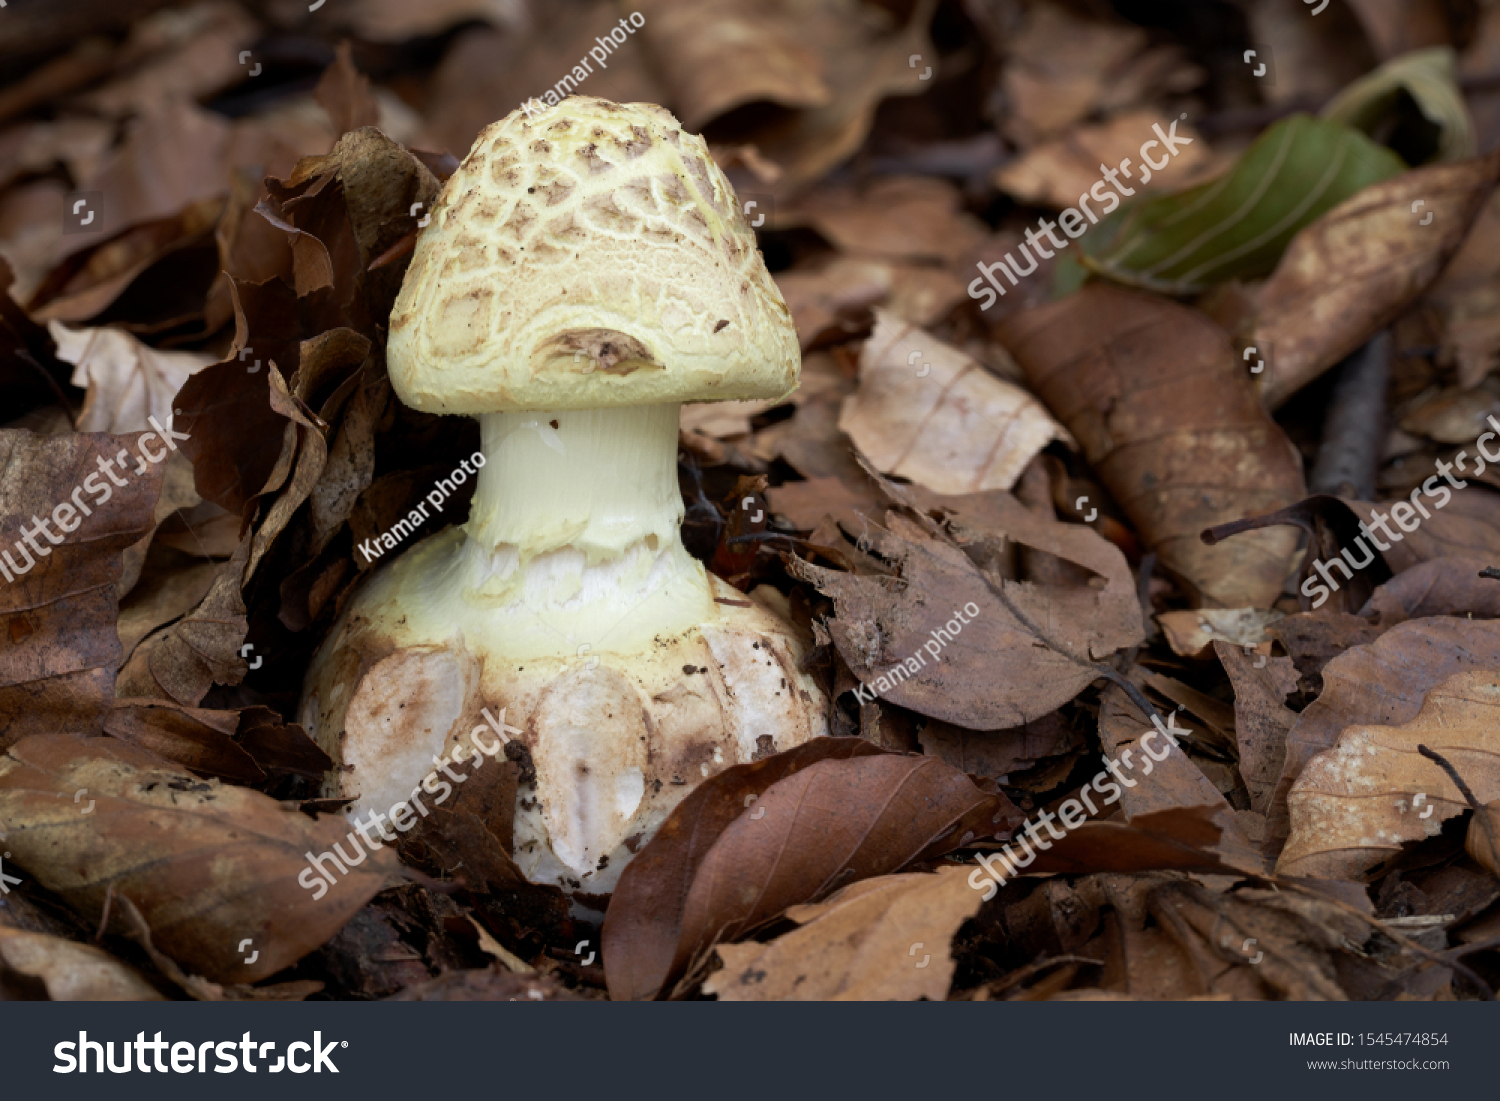 Inedible mushroom Amanita citrina growing in the leaves in the beech forest. Also known as false death cap, Citron Amanita or Amanita mappa. Mushroom with lemon yellow cap and stem. Autumn time.